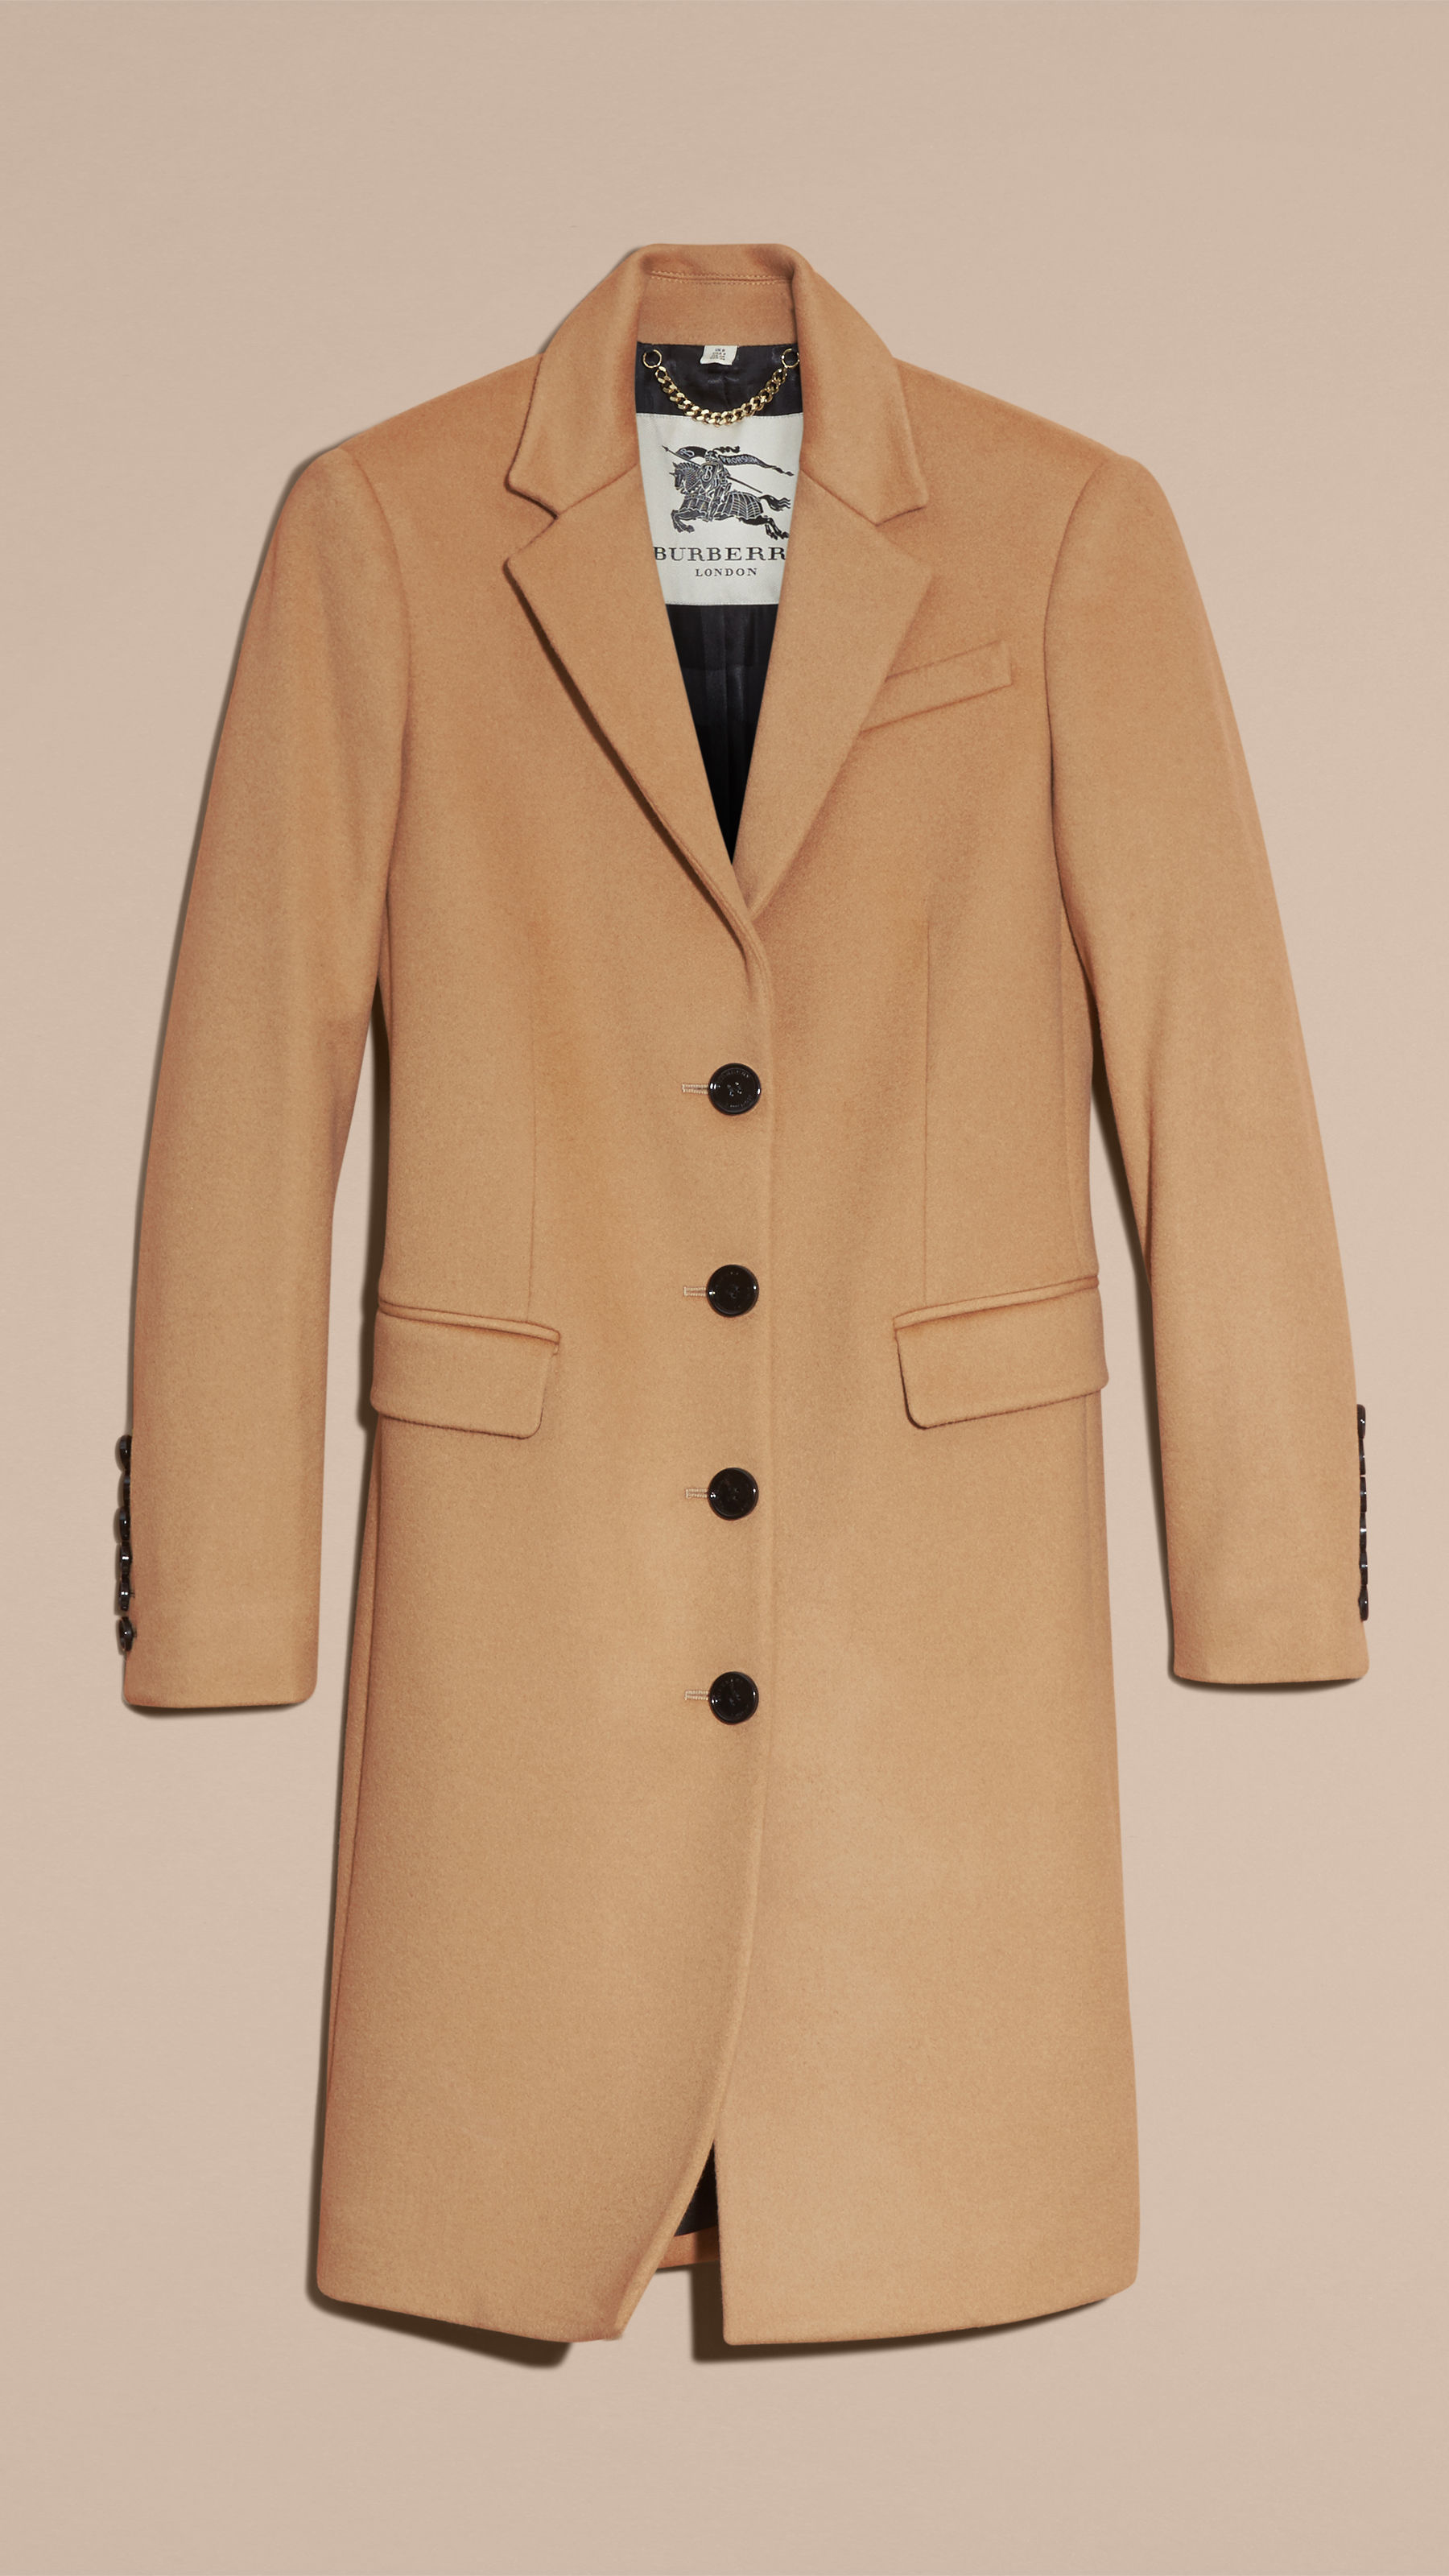 Burberry Tailored Wool Cashmere Coat Camel in Natural